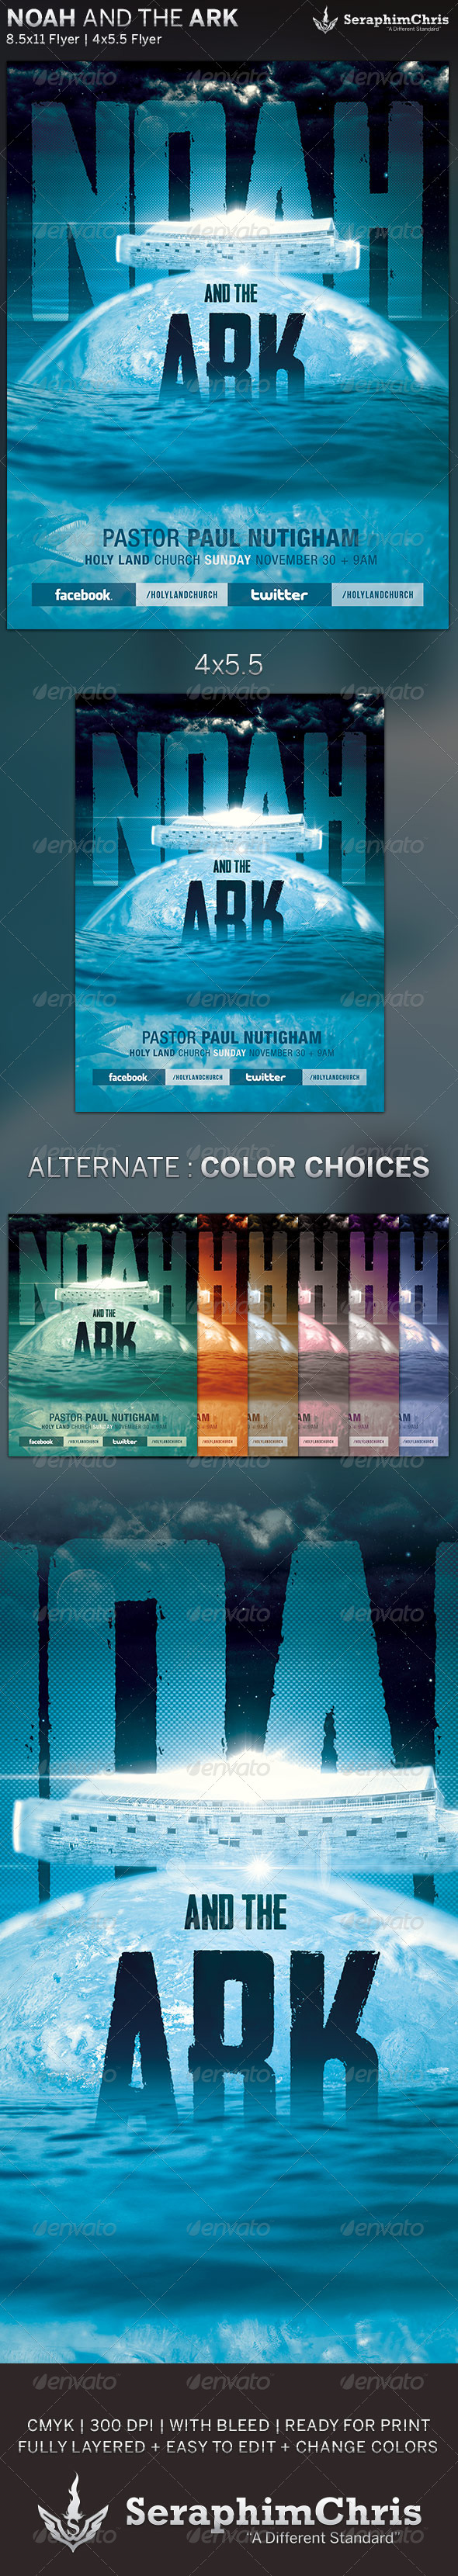 GraphicRiver Noah and the Ark Church Flyer Template 6023867